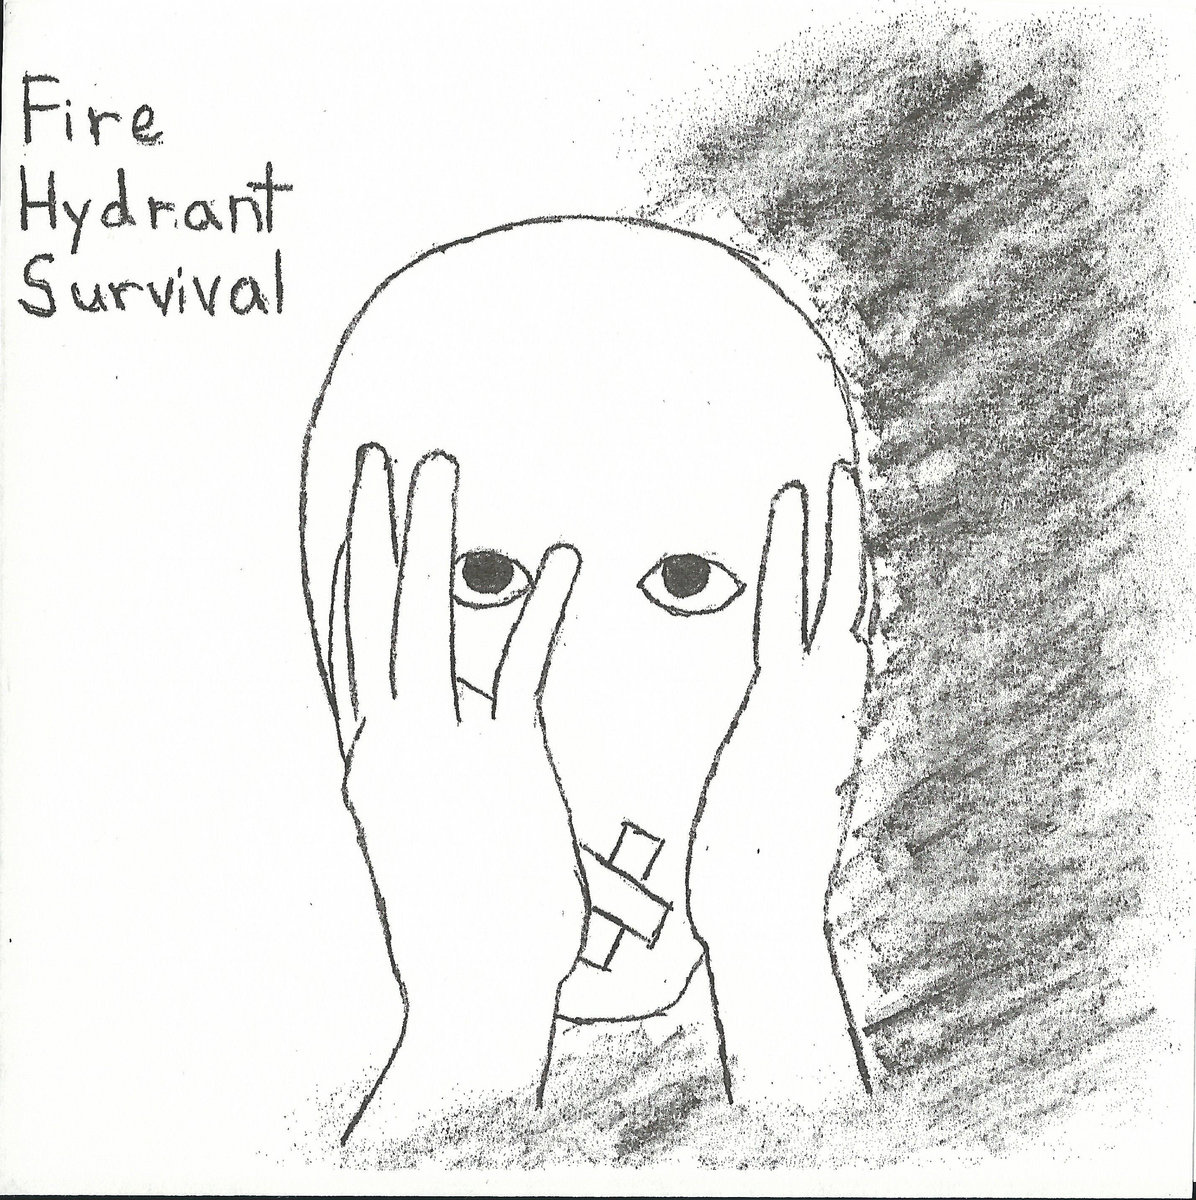 Fire Hydrant Survival